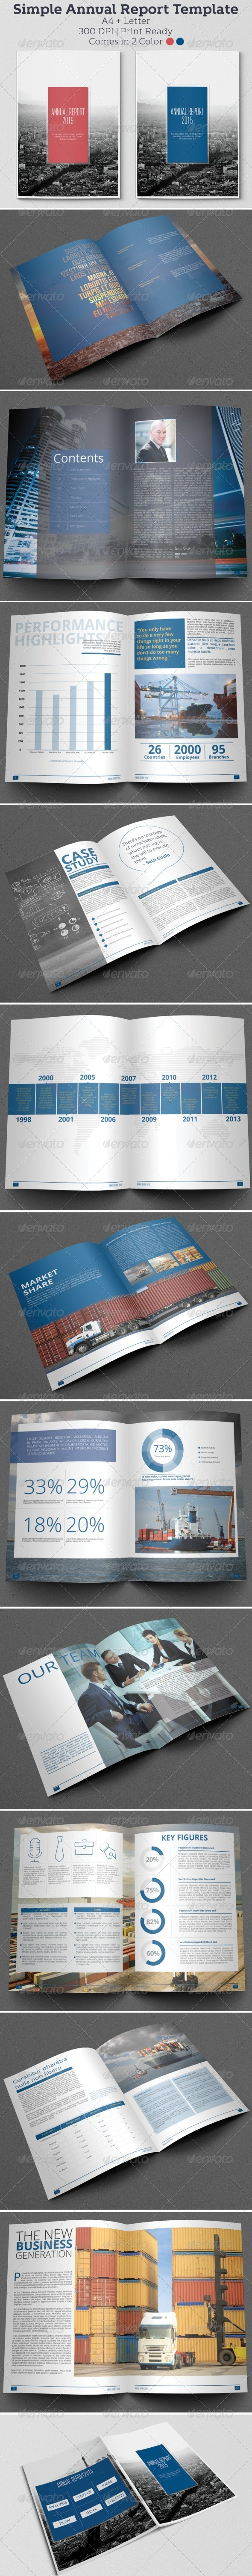 GraphicRiver Simple Annual Report Template 6365129